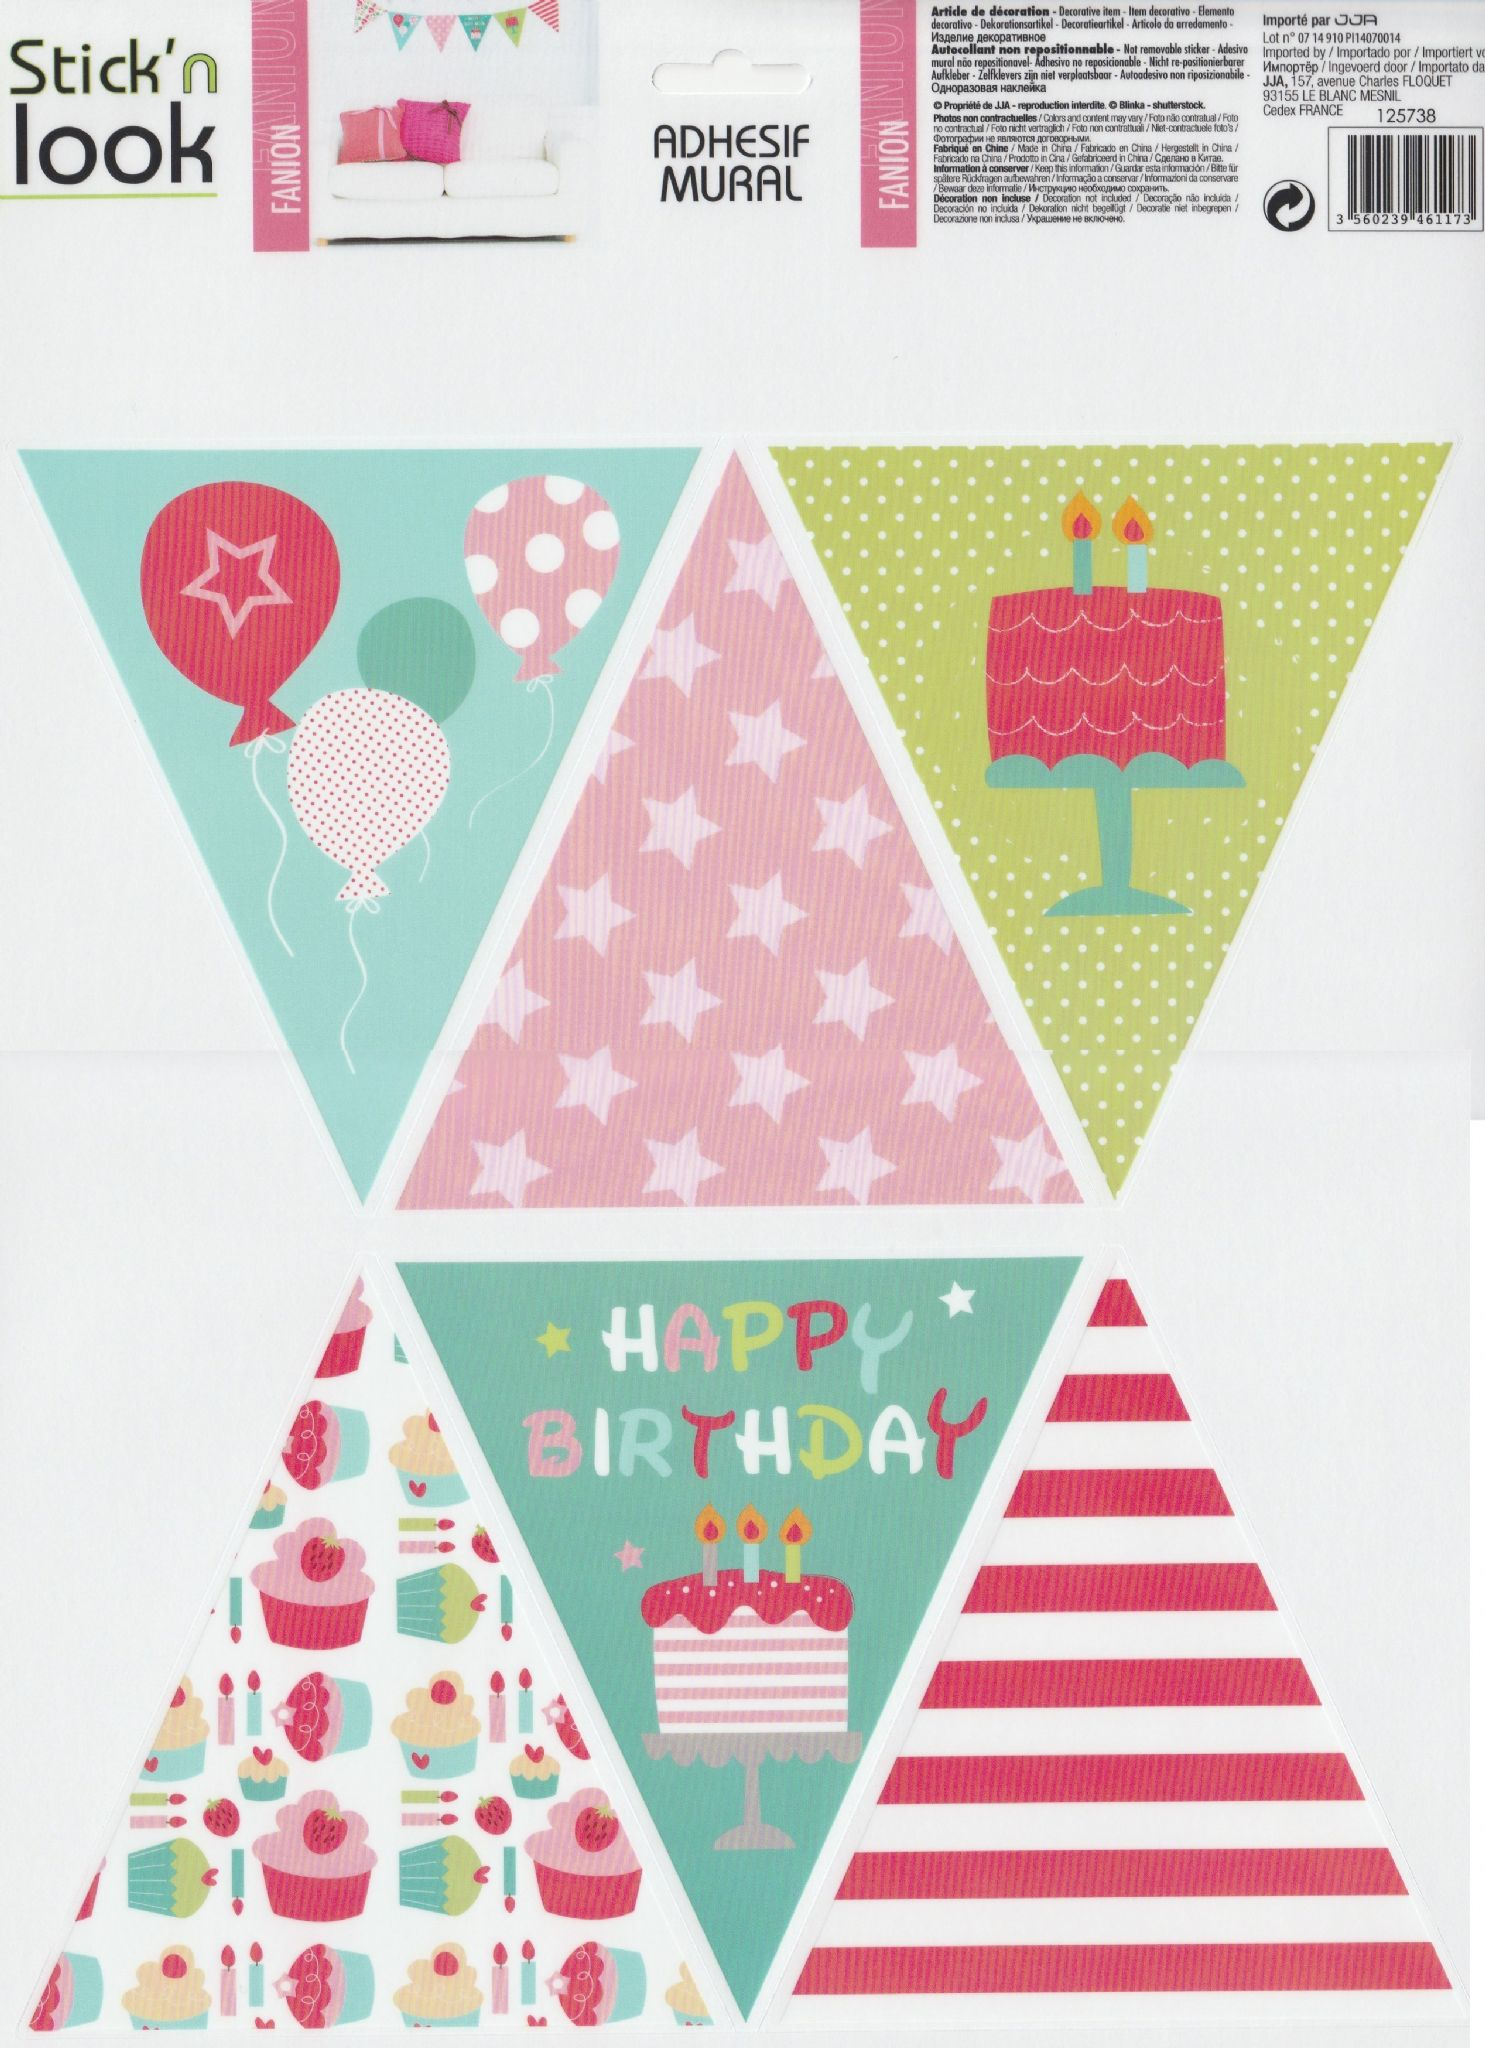 design sticker birthday ; vintage-floral-bunting-wall-sticker-flag-design-vinyl-transfer-mural-wall-art-12-triangle-stickers-birthday-%5b2%5d-3059-p